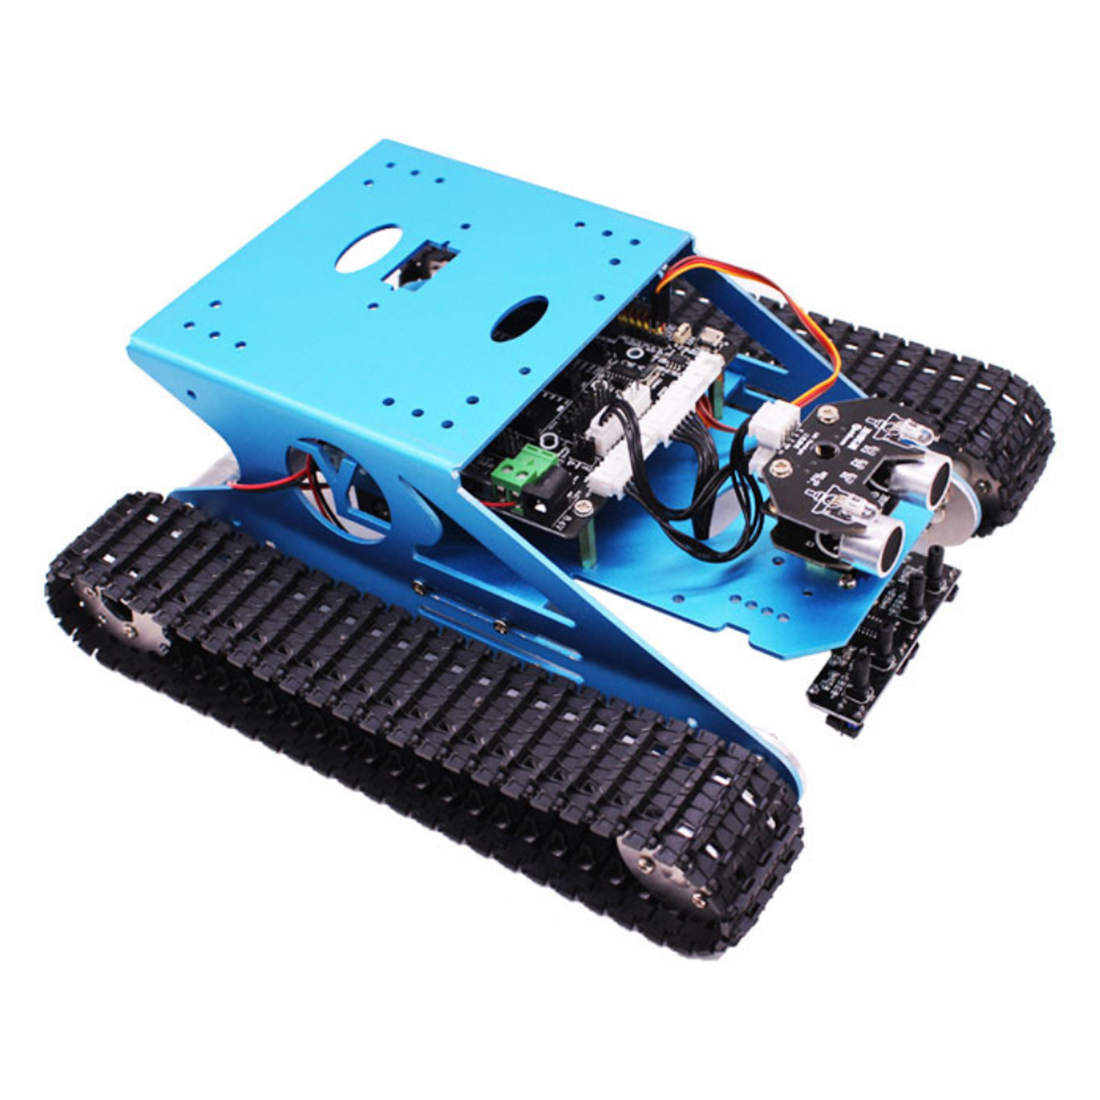 Track Robot Kit Programmable Smart Tank Mobile Platform Chassis Robot Kit Electronic Project Learning With C Language&Graphical